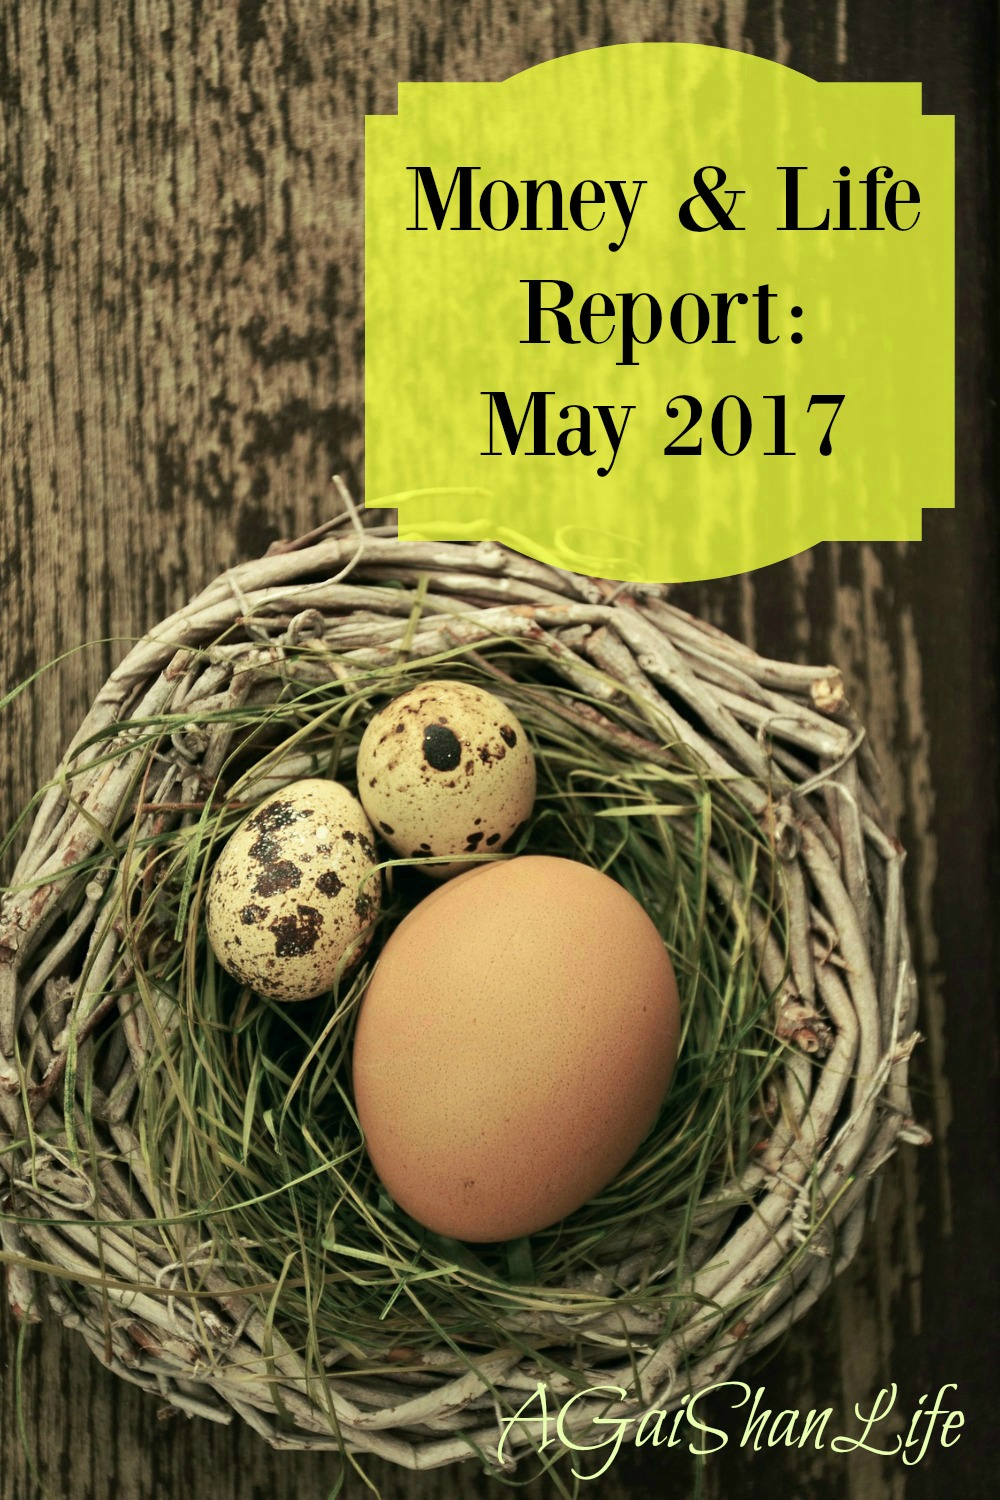 Money and Life Report: May 2017